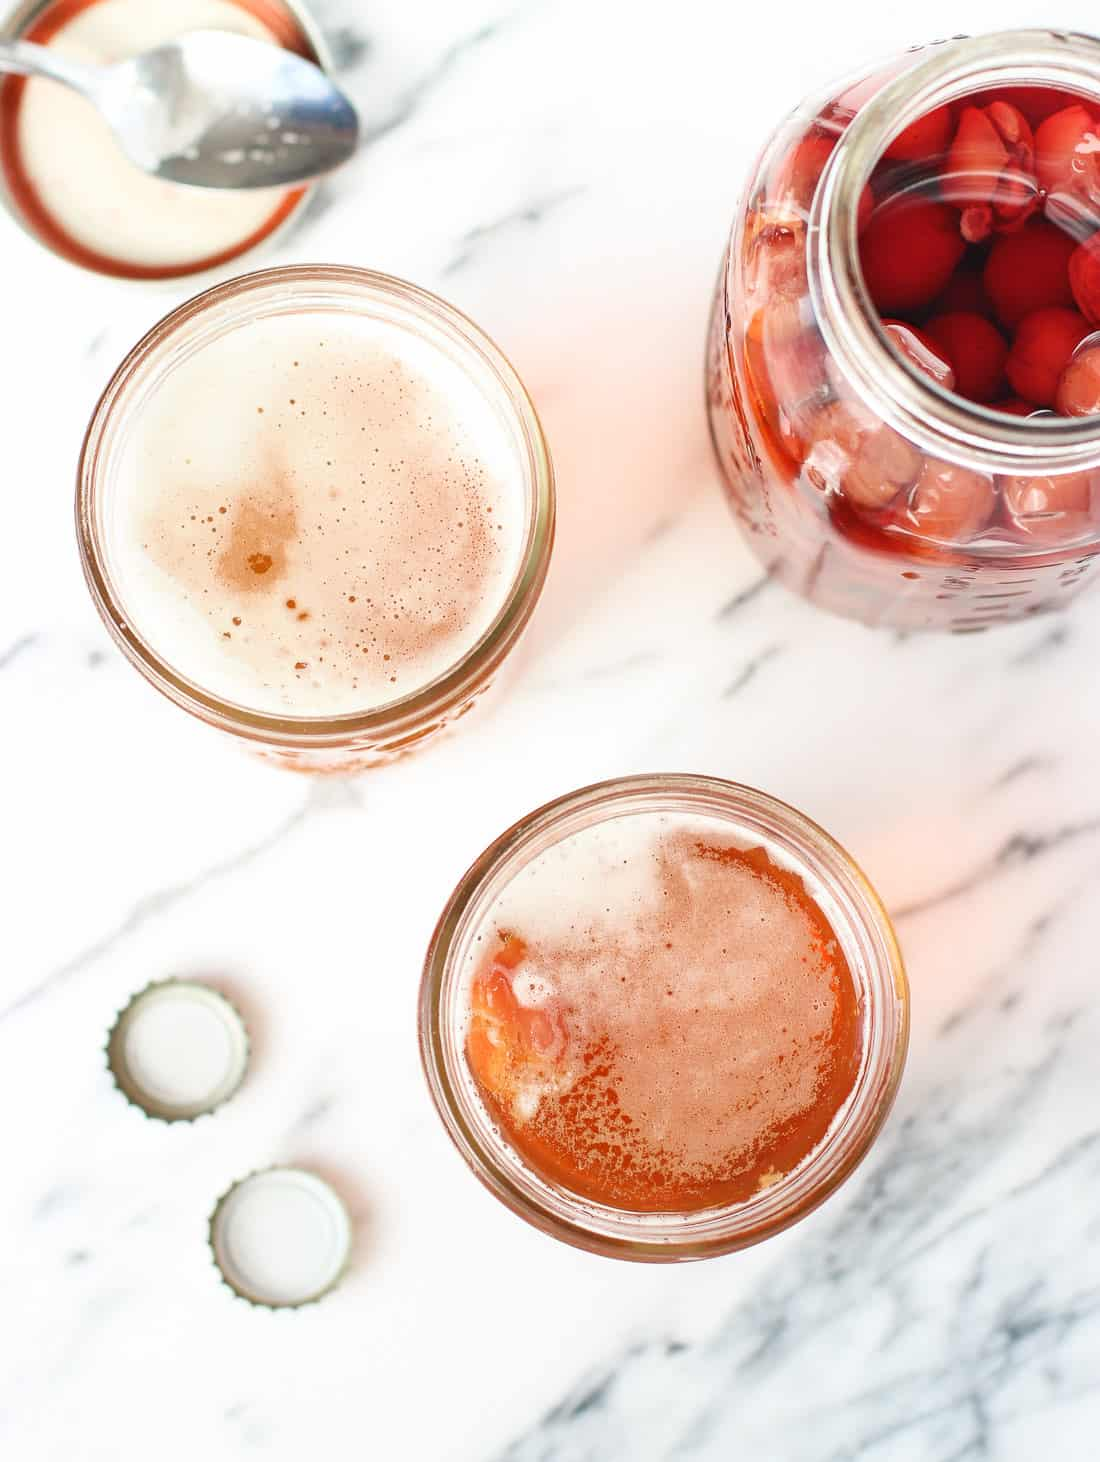 An overhead picture of two snakebites next to a big glass jar of maraschino cherries, a spoon, and two beer caps